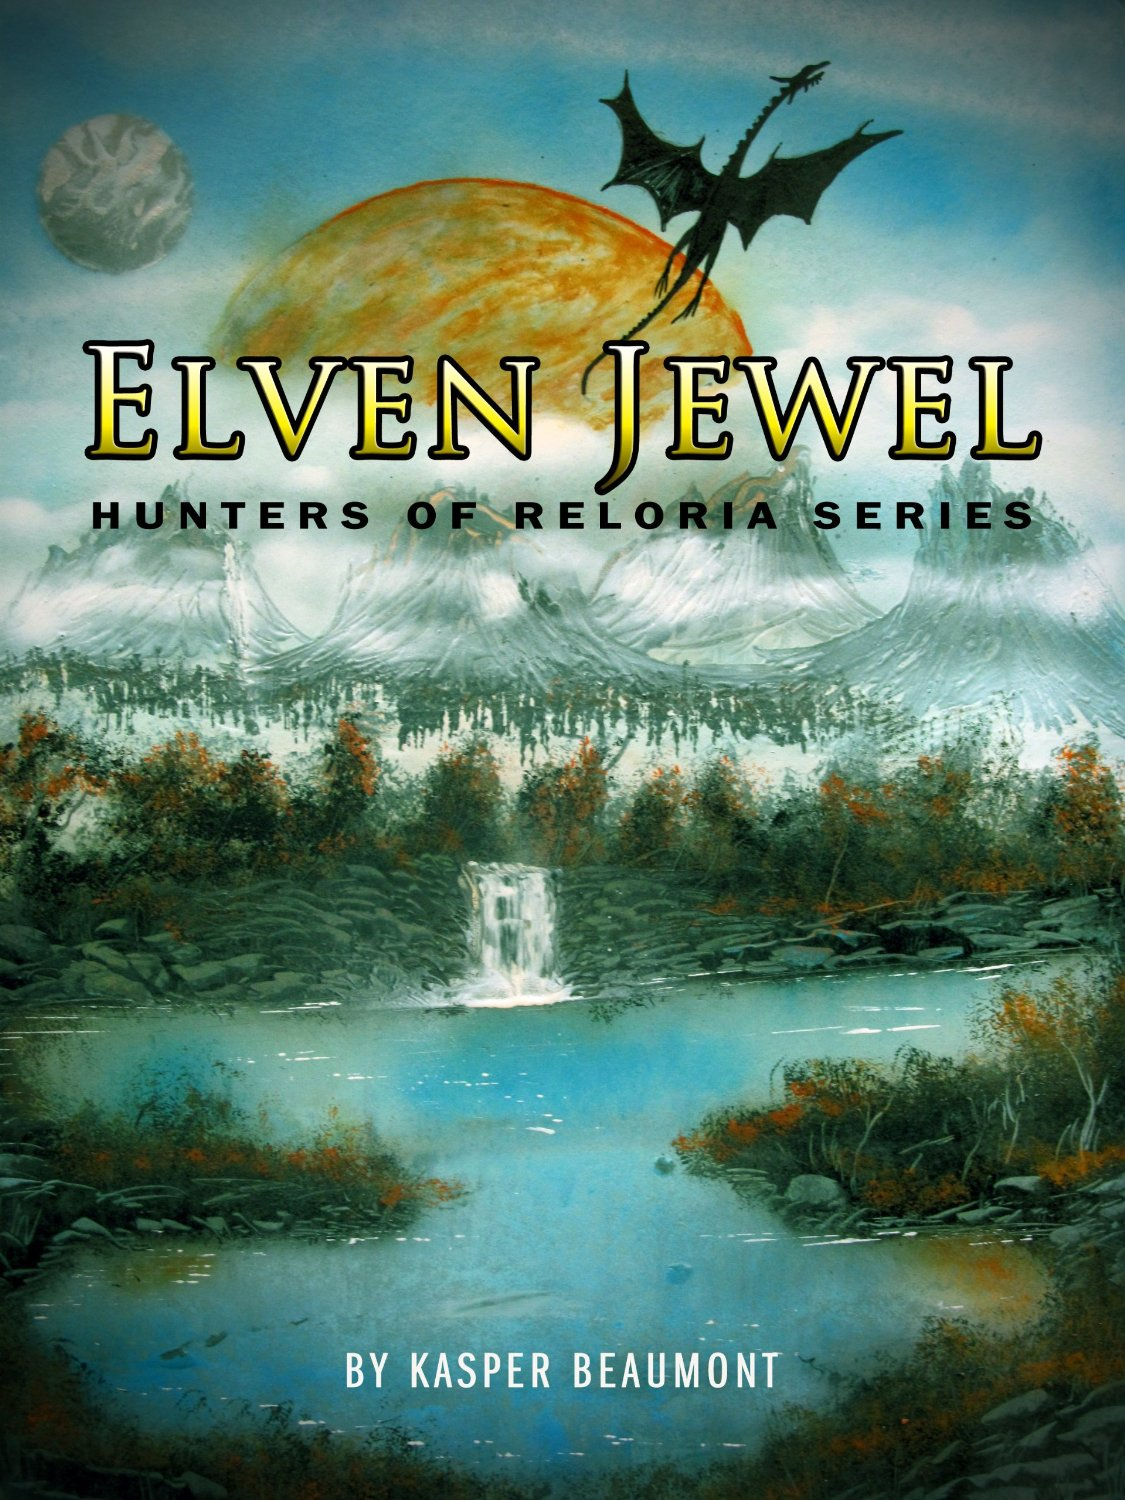 Book review: Elven Jewel by Kasper Beaumont